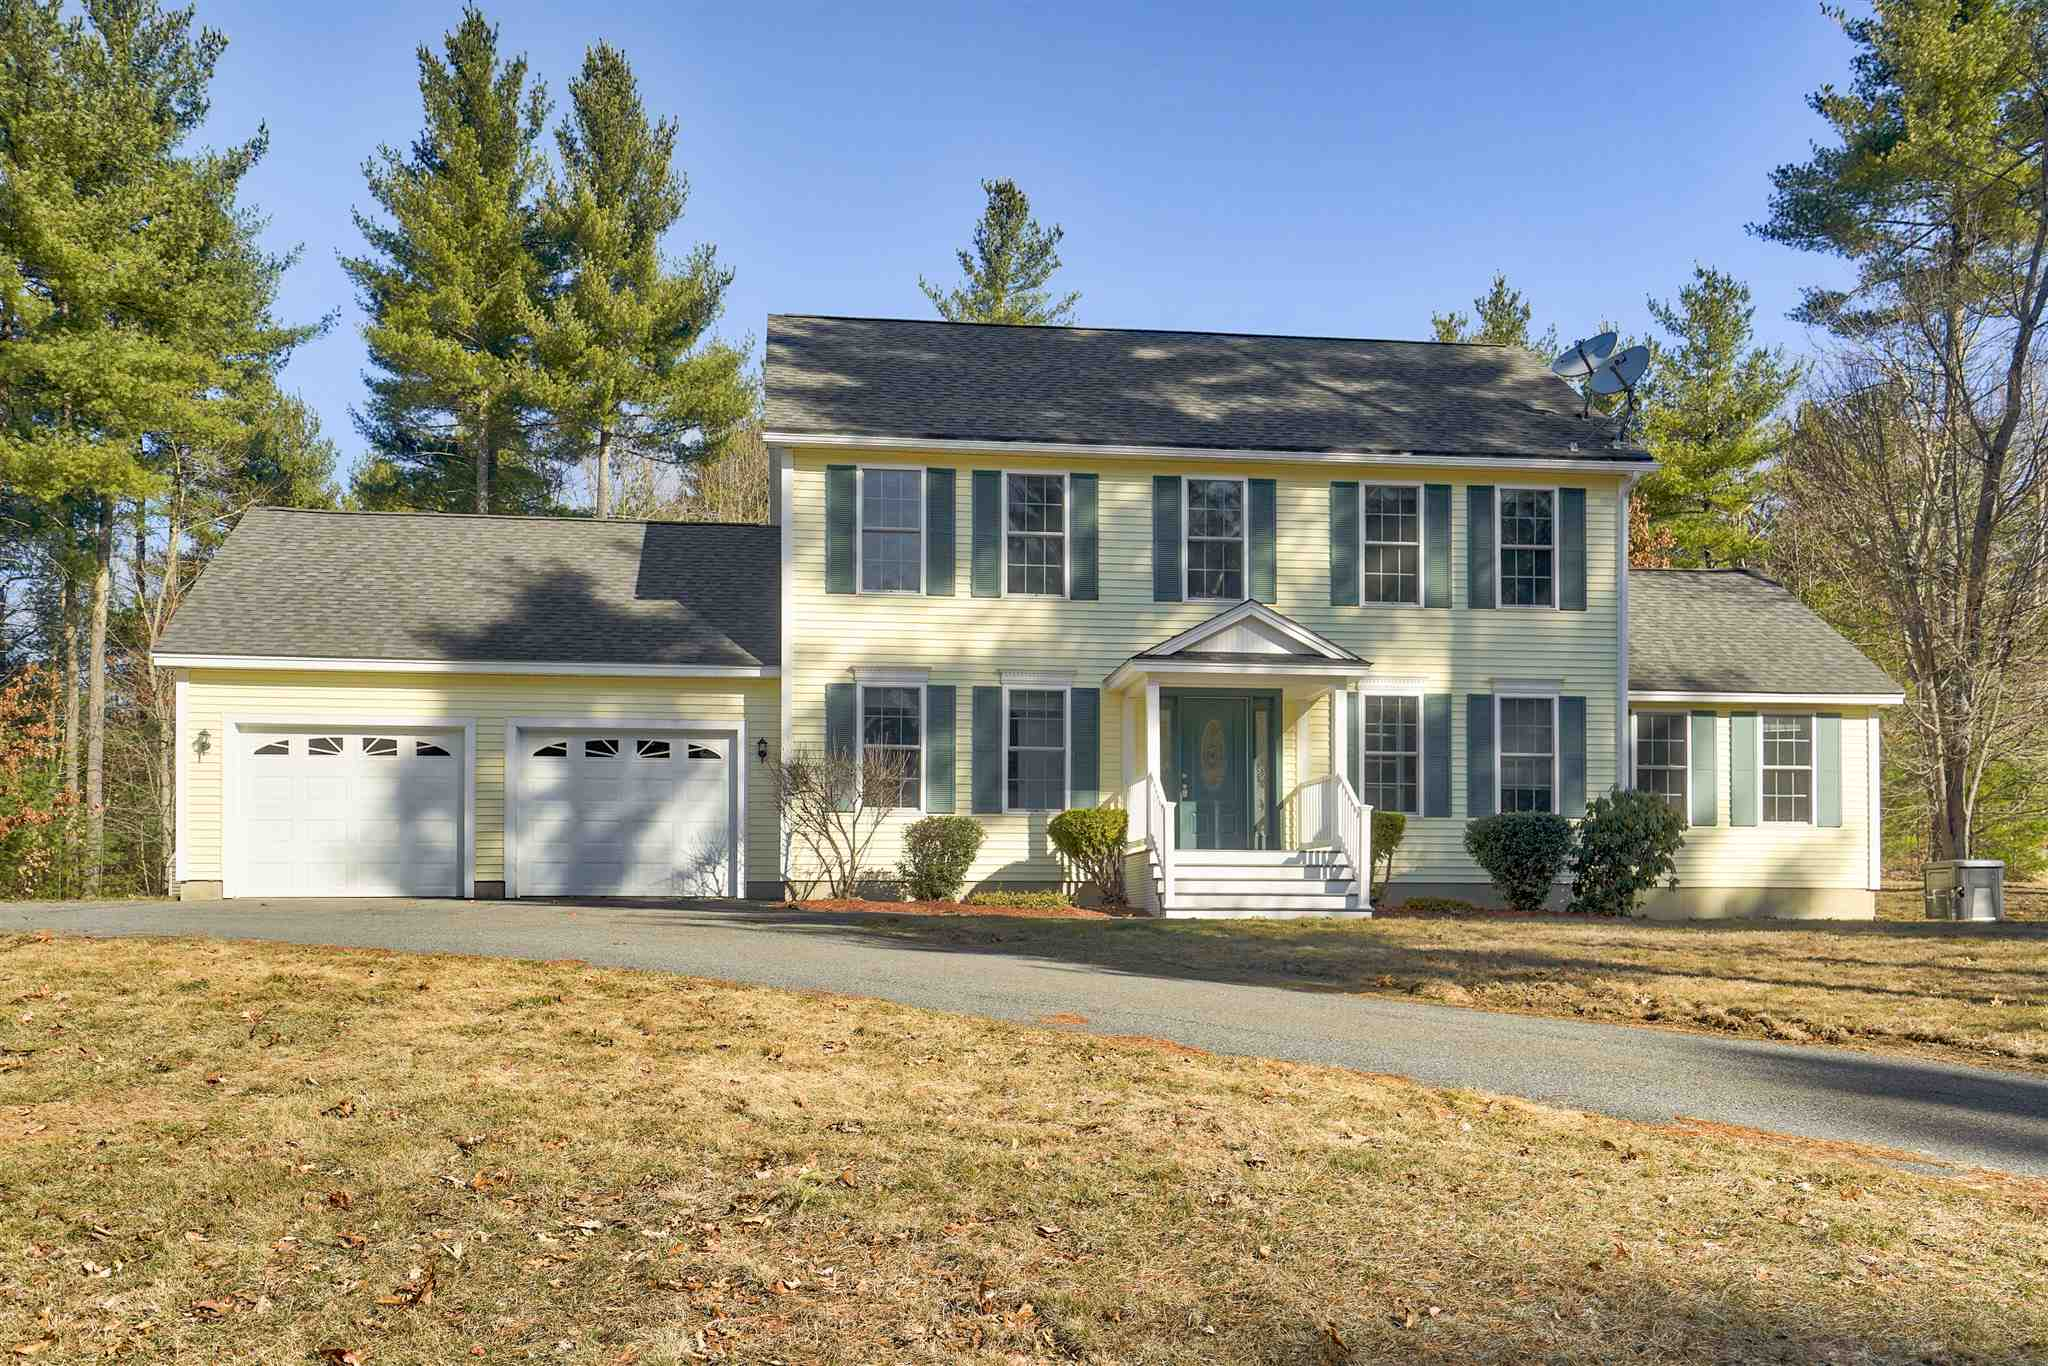 MLS 4798400: 122 Pinecrest Road, Litchfield NH